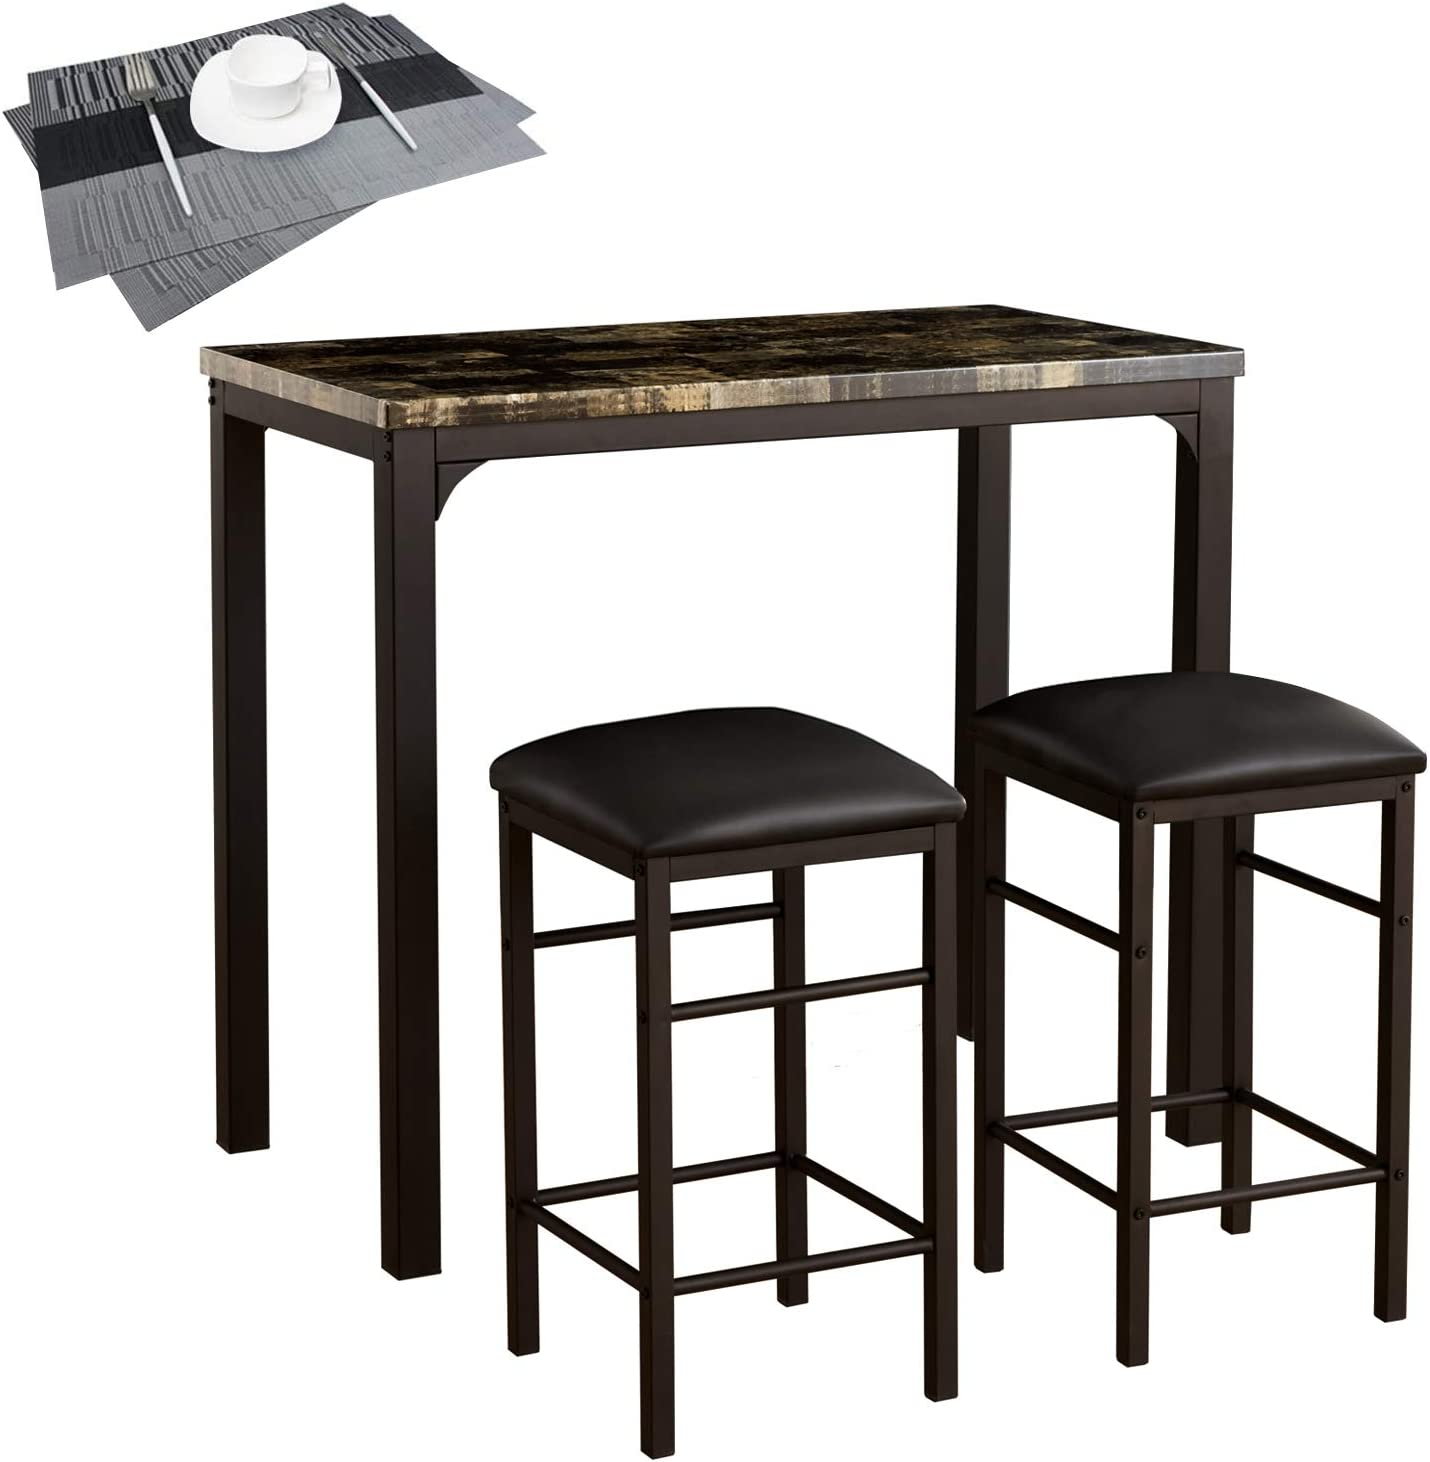 3 Pieces Pub Table Set with Faux Marble Top /& 2 Cushioned Bar Stools Metal Frame